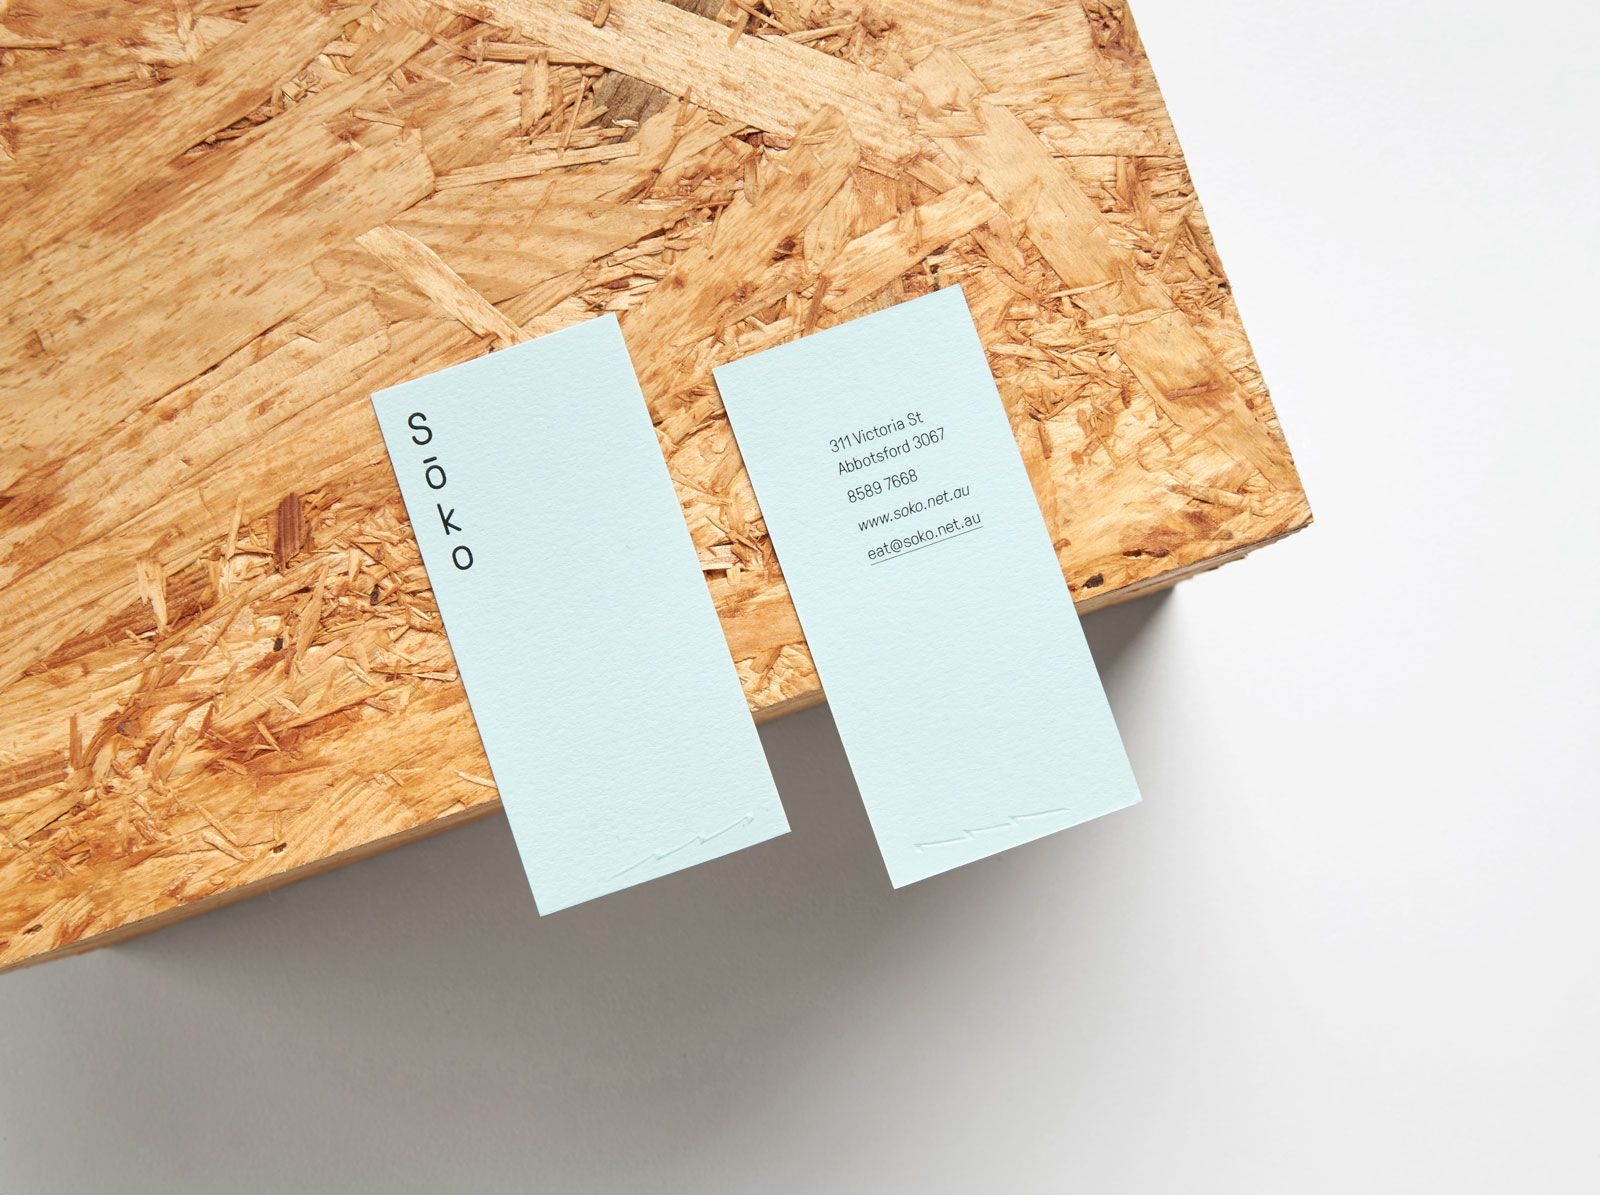 Sko grilli type independent swiss type foundry free trial business cards sko grilli type independent swiss type foundry free trial fonts colourmoves